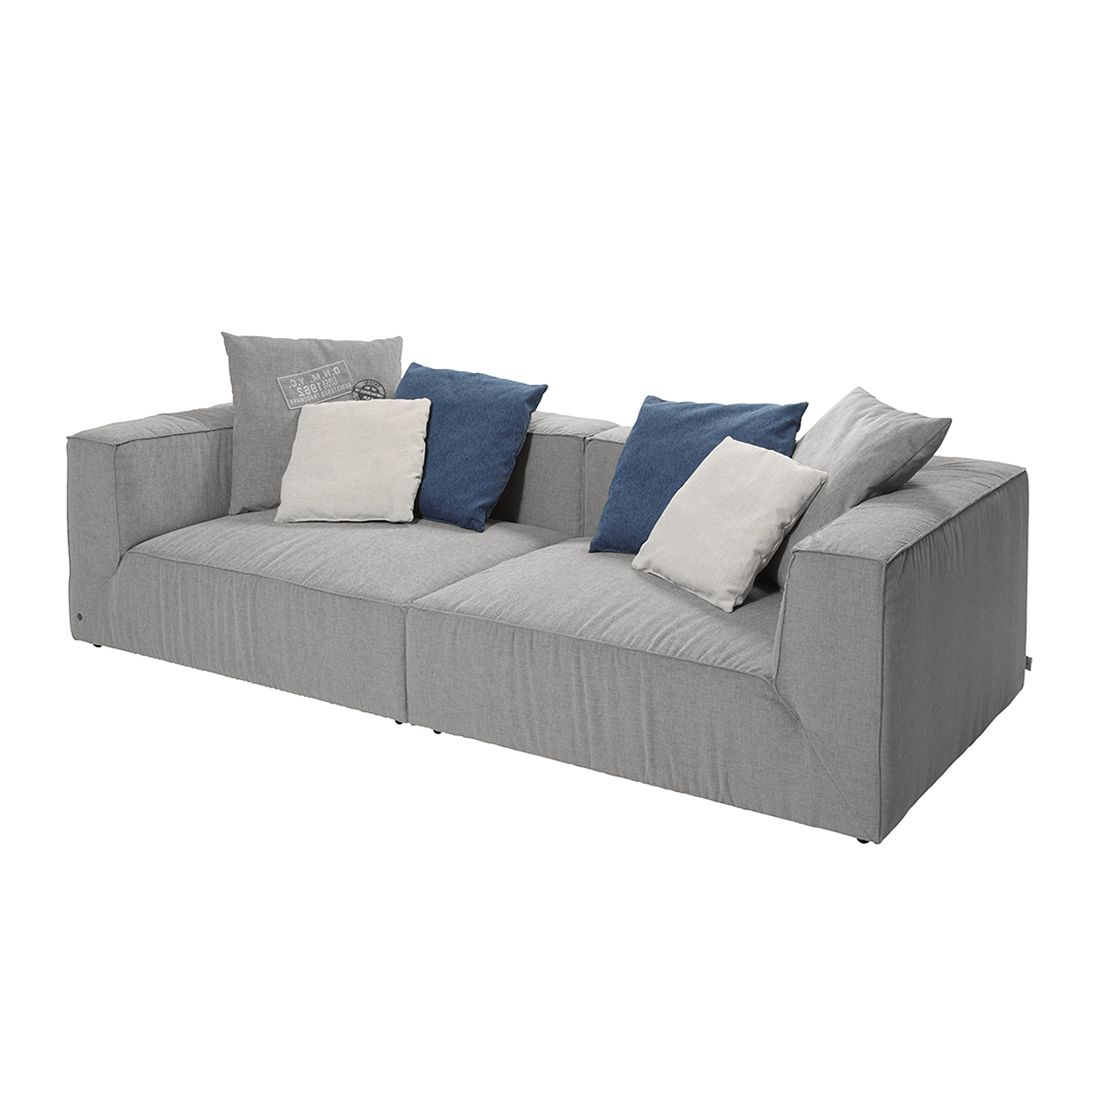 Full Size of Sofa Tom Tailor Heaven Casual Nordic Pure West Coast Otto Style Colors Xl S Couch Big Chic Cube überzug Für Esszimmer Togo Led Rolf Benz Mega Barock Mit Sofa Sofa Tom Tailor